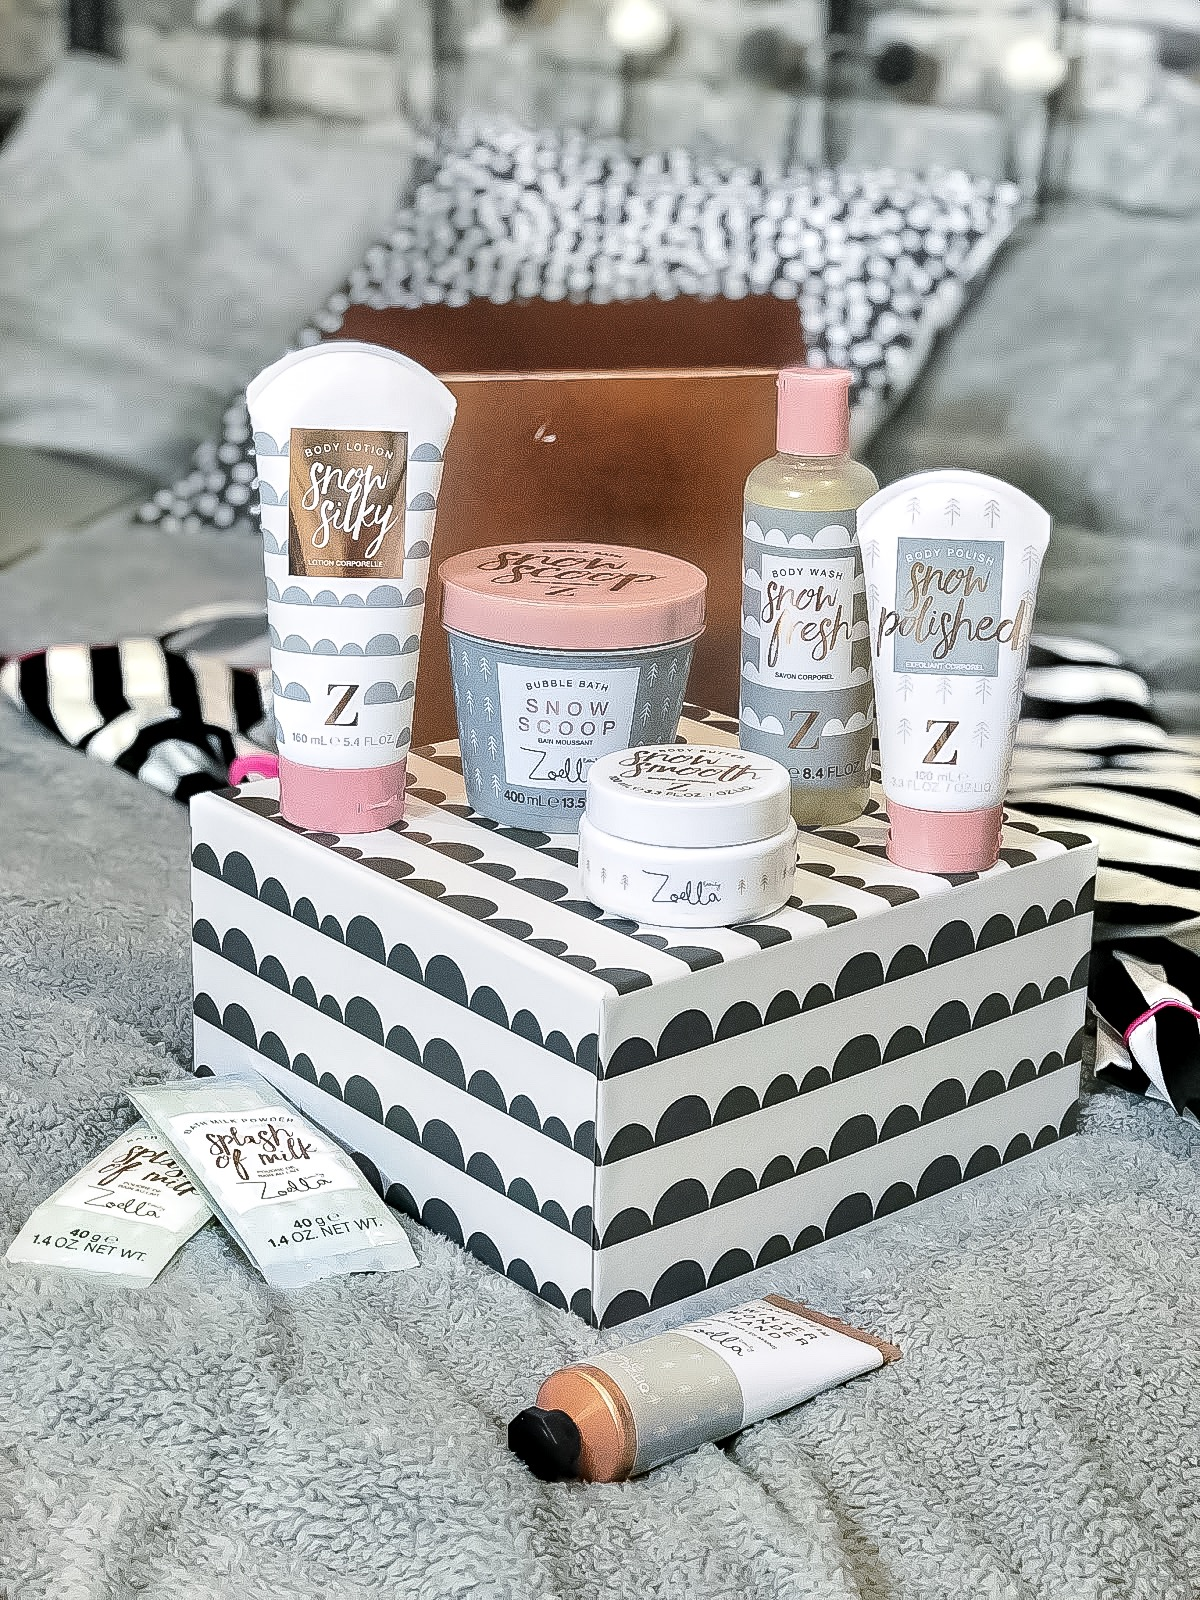 zoella bath and body products review snowella scent winter 2017